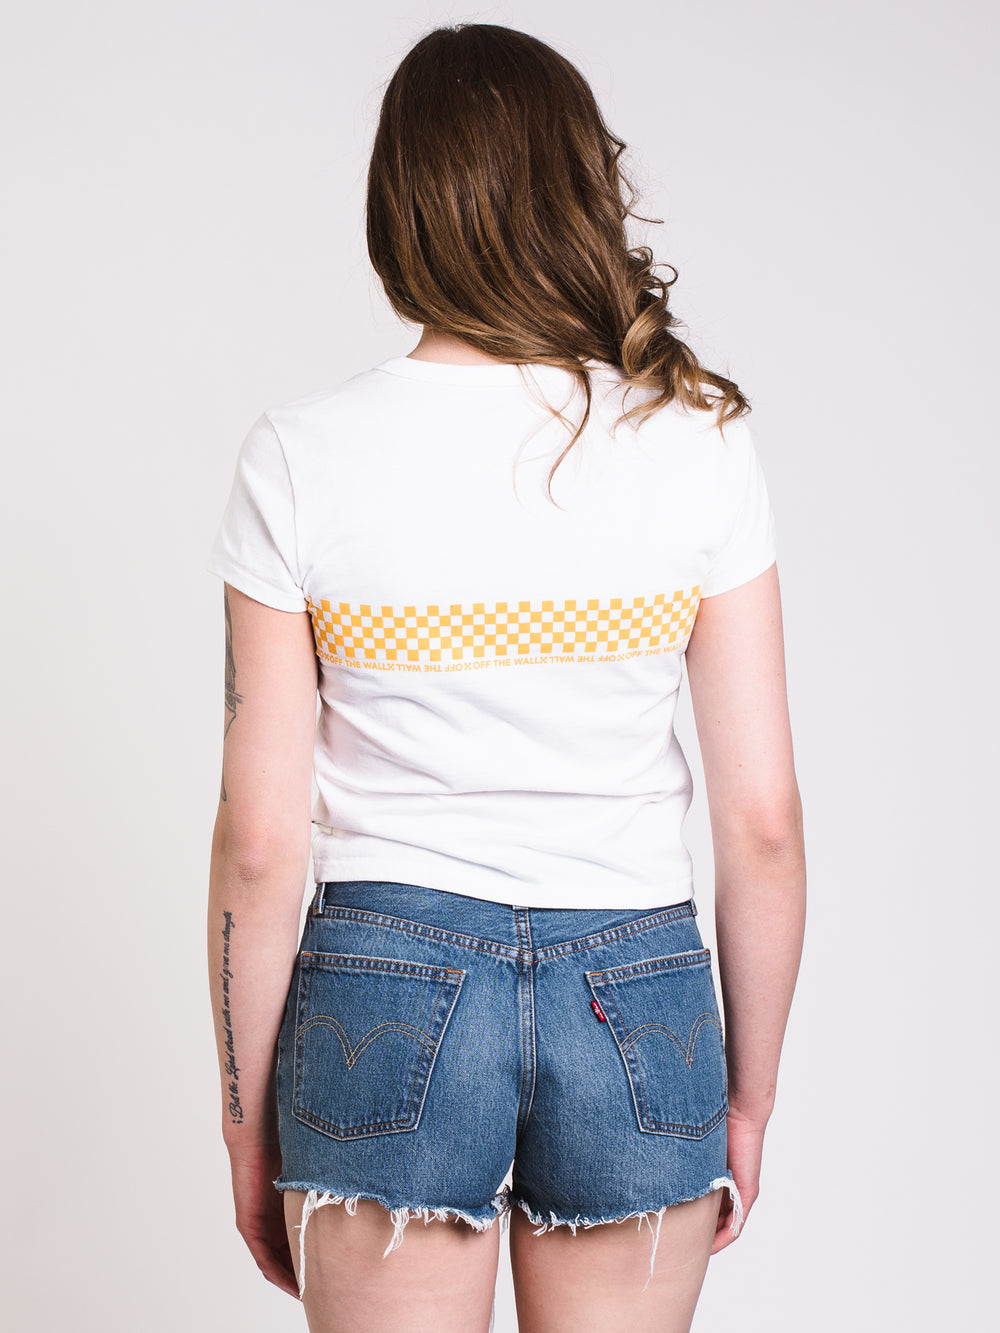 WOMENS CHECKERED BABY TEE - WHITE - CLEARANCE